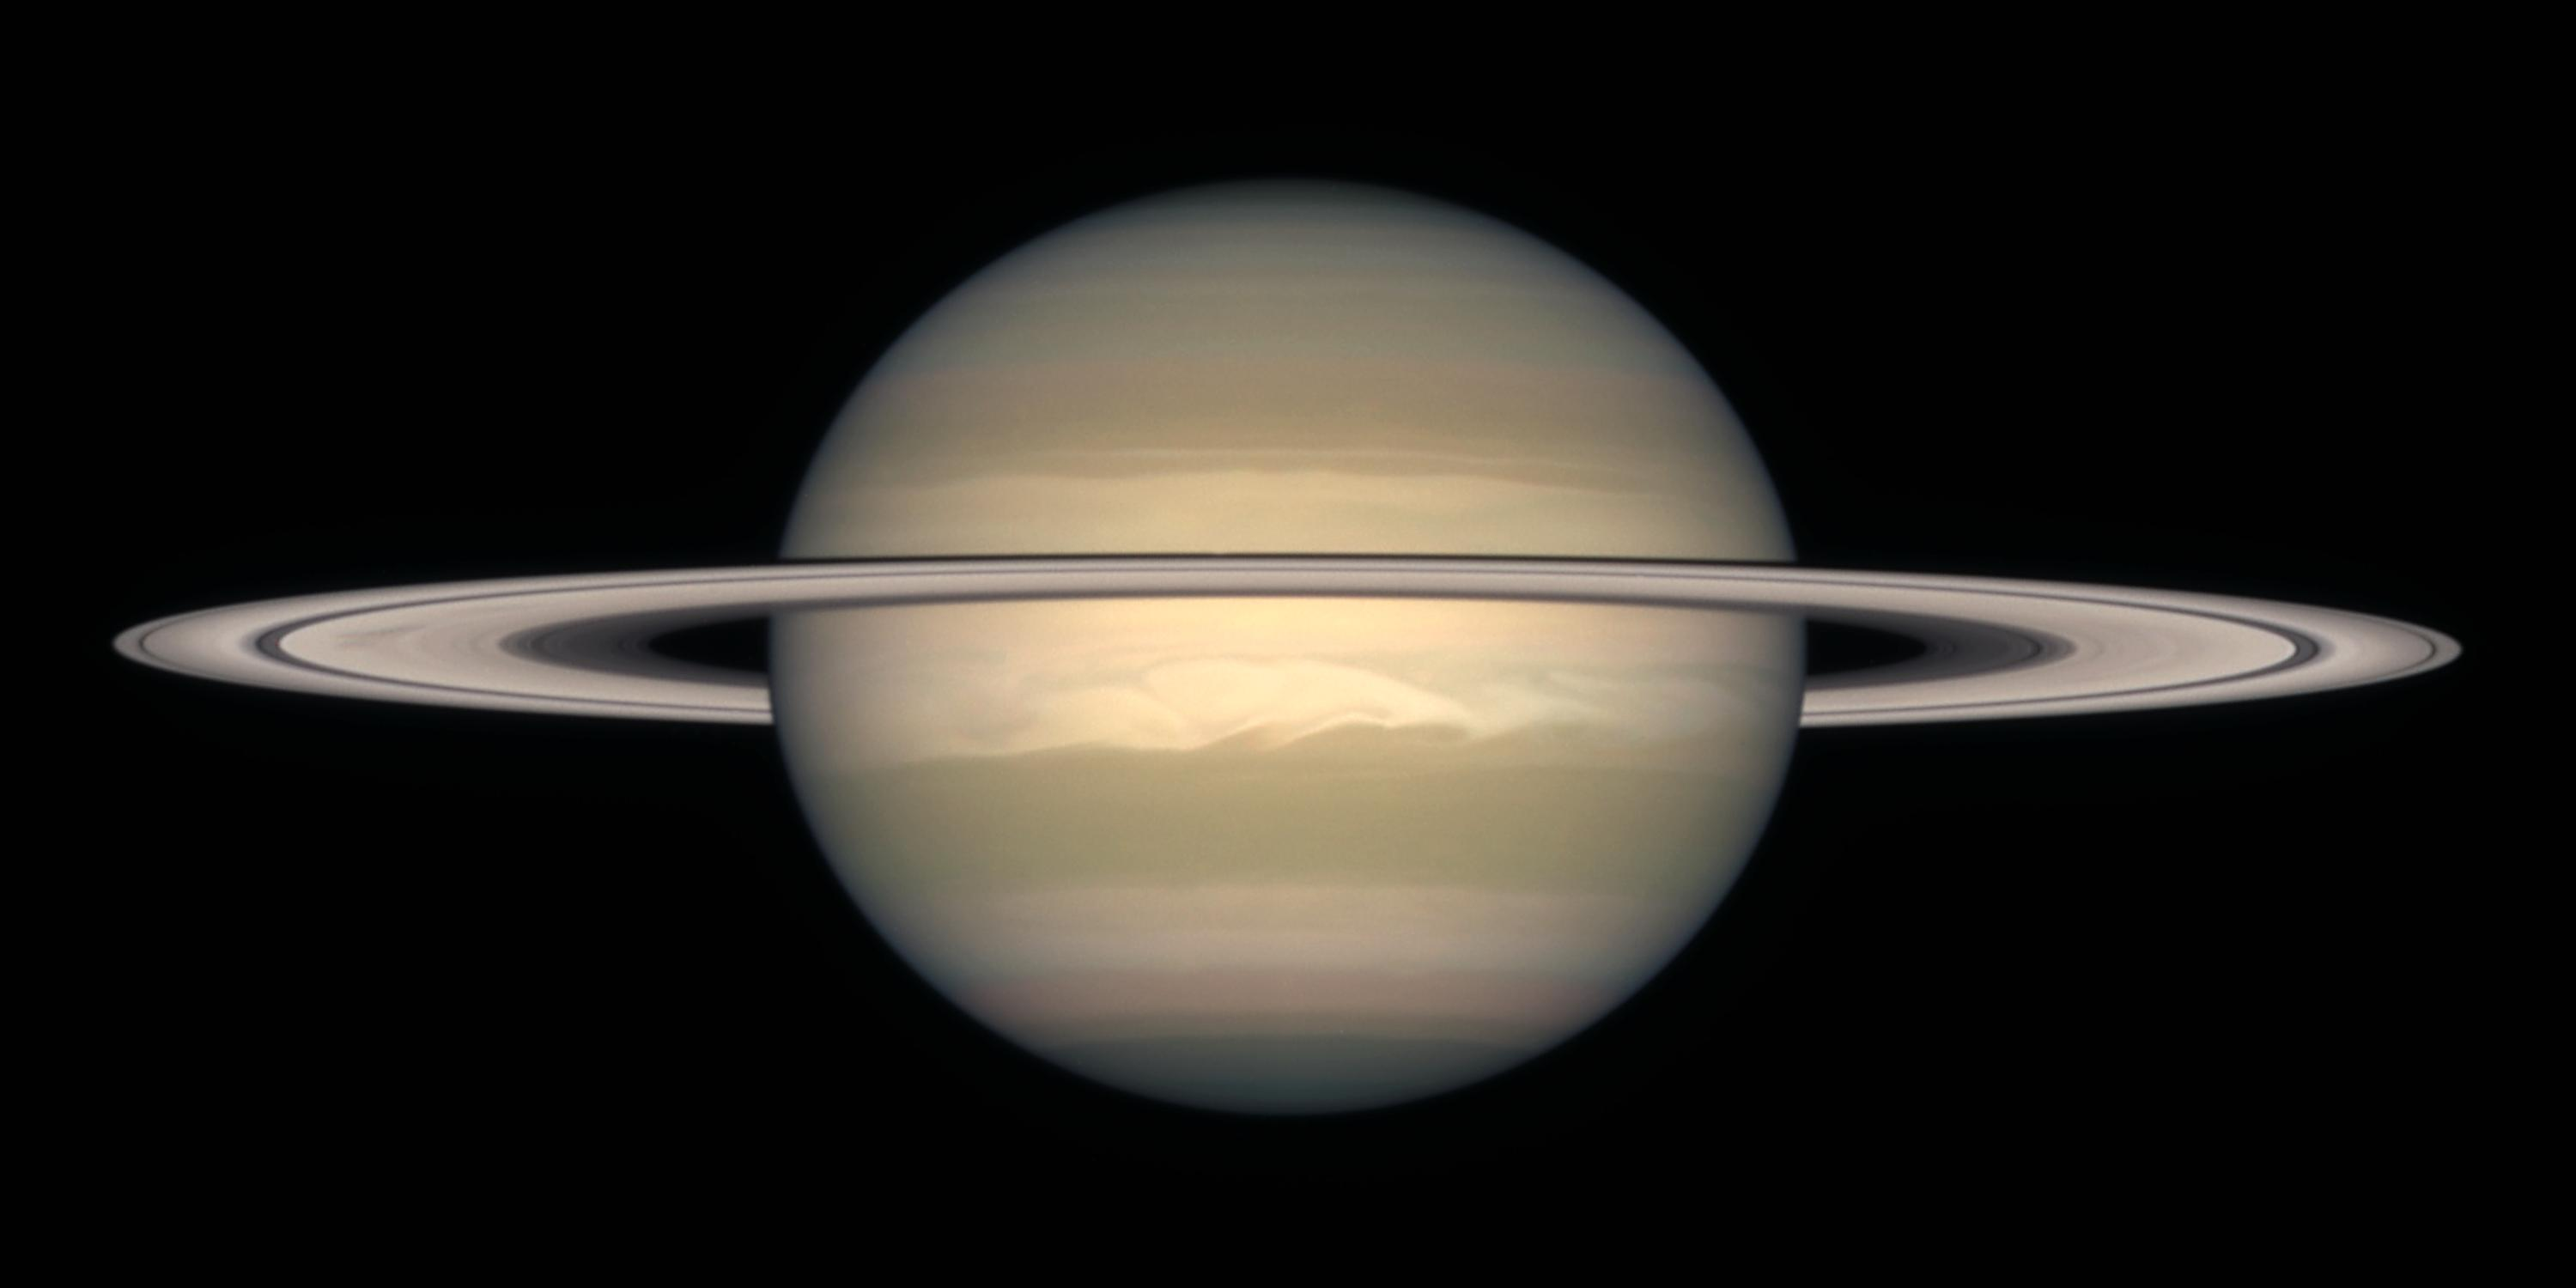 File:Saturn from Hubble.jpg - Wikimedia Commons